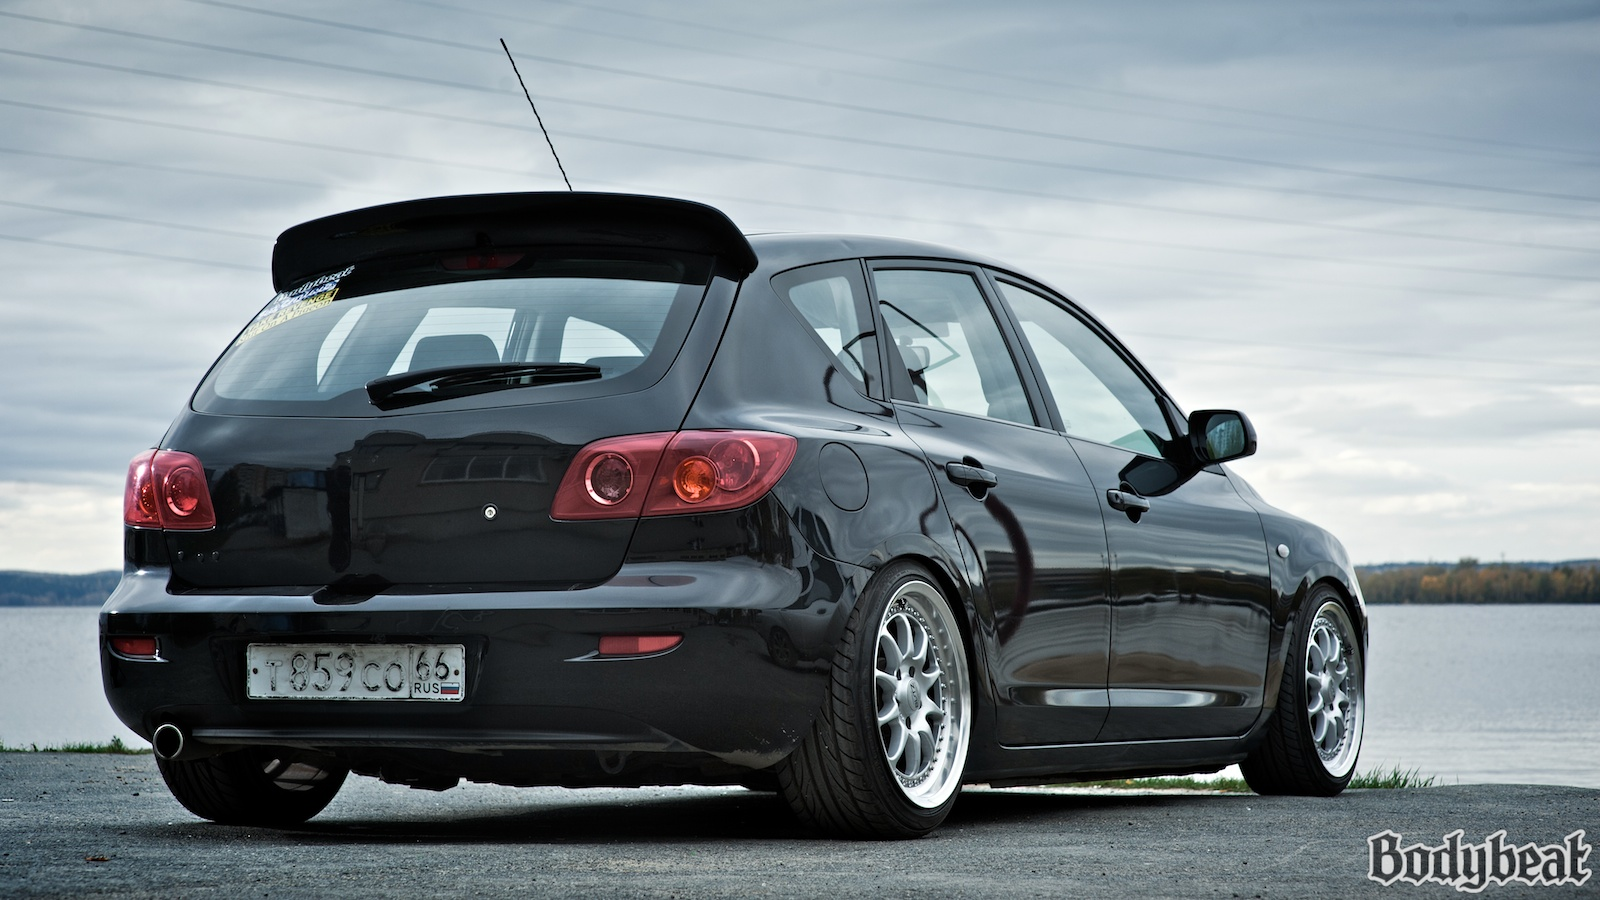 Mazda 3, MPS, Mazdaspeed3, hot hatchback, turbo, tuning